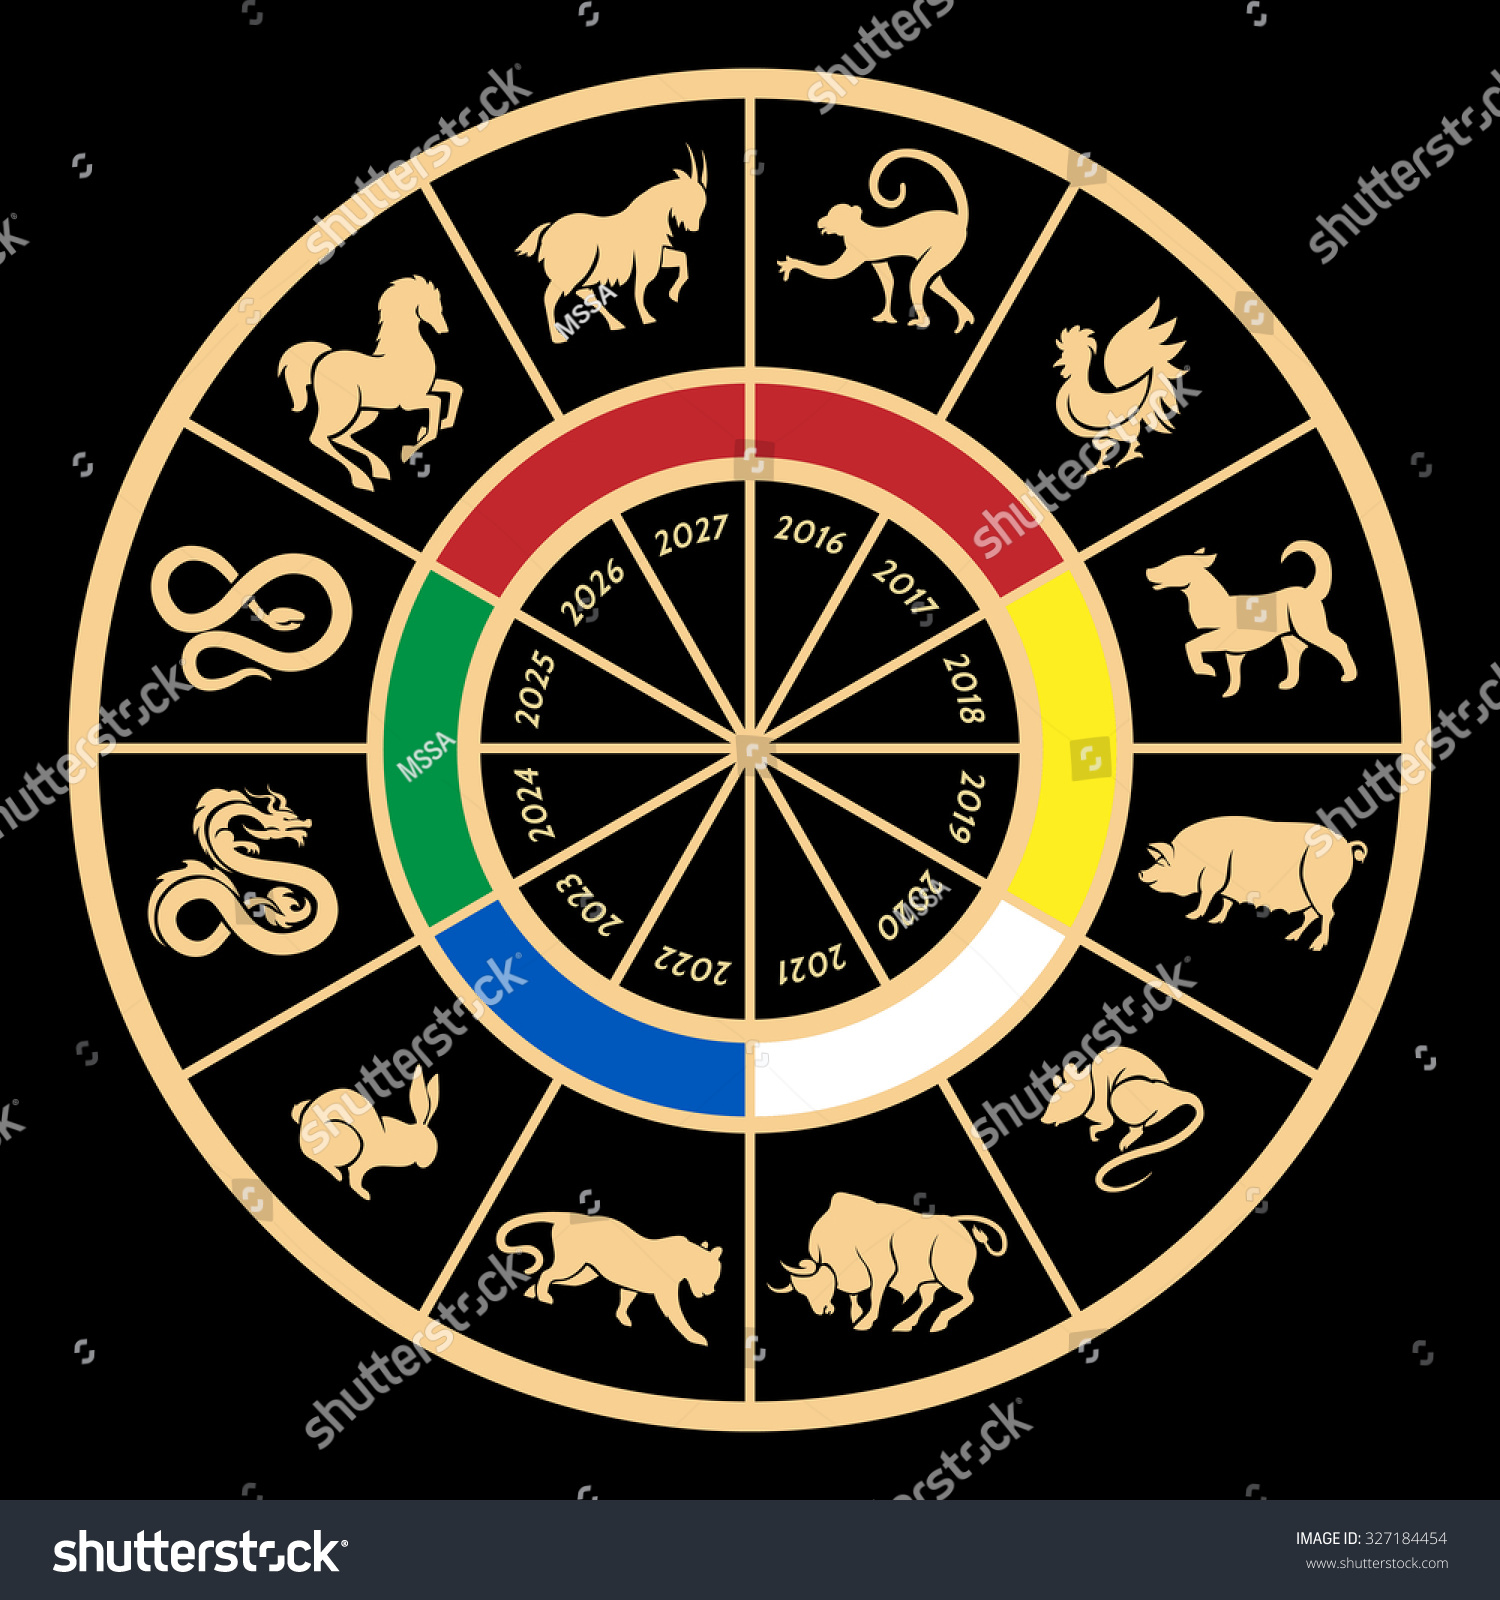 Calendar Design Zodiac : Chinese years zodiac calendar animal sign stock vector